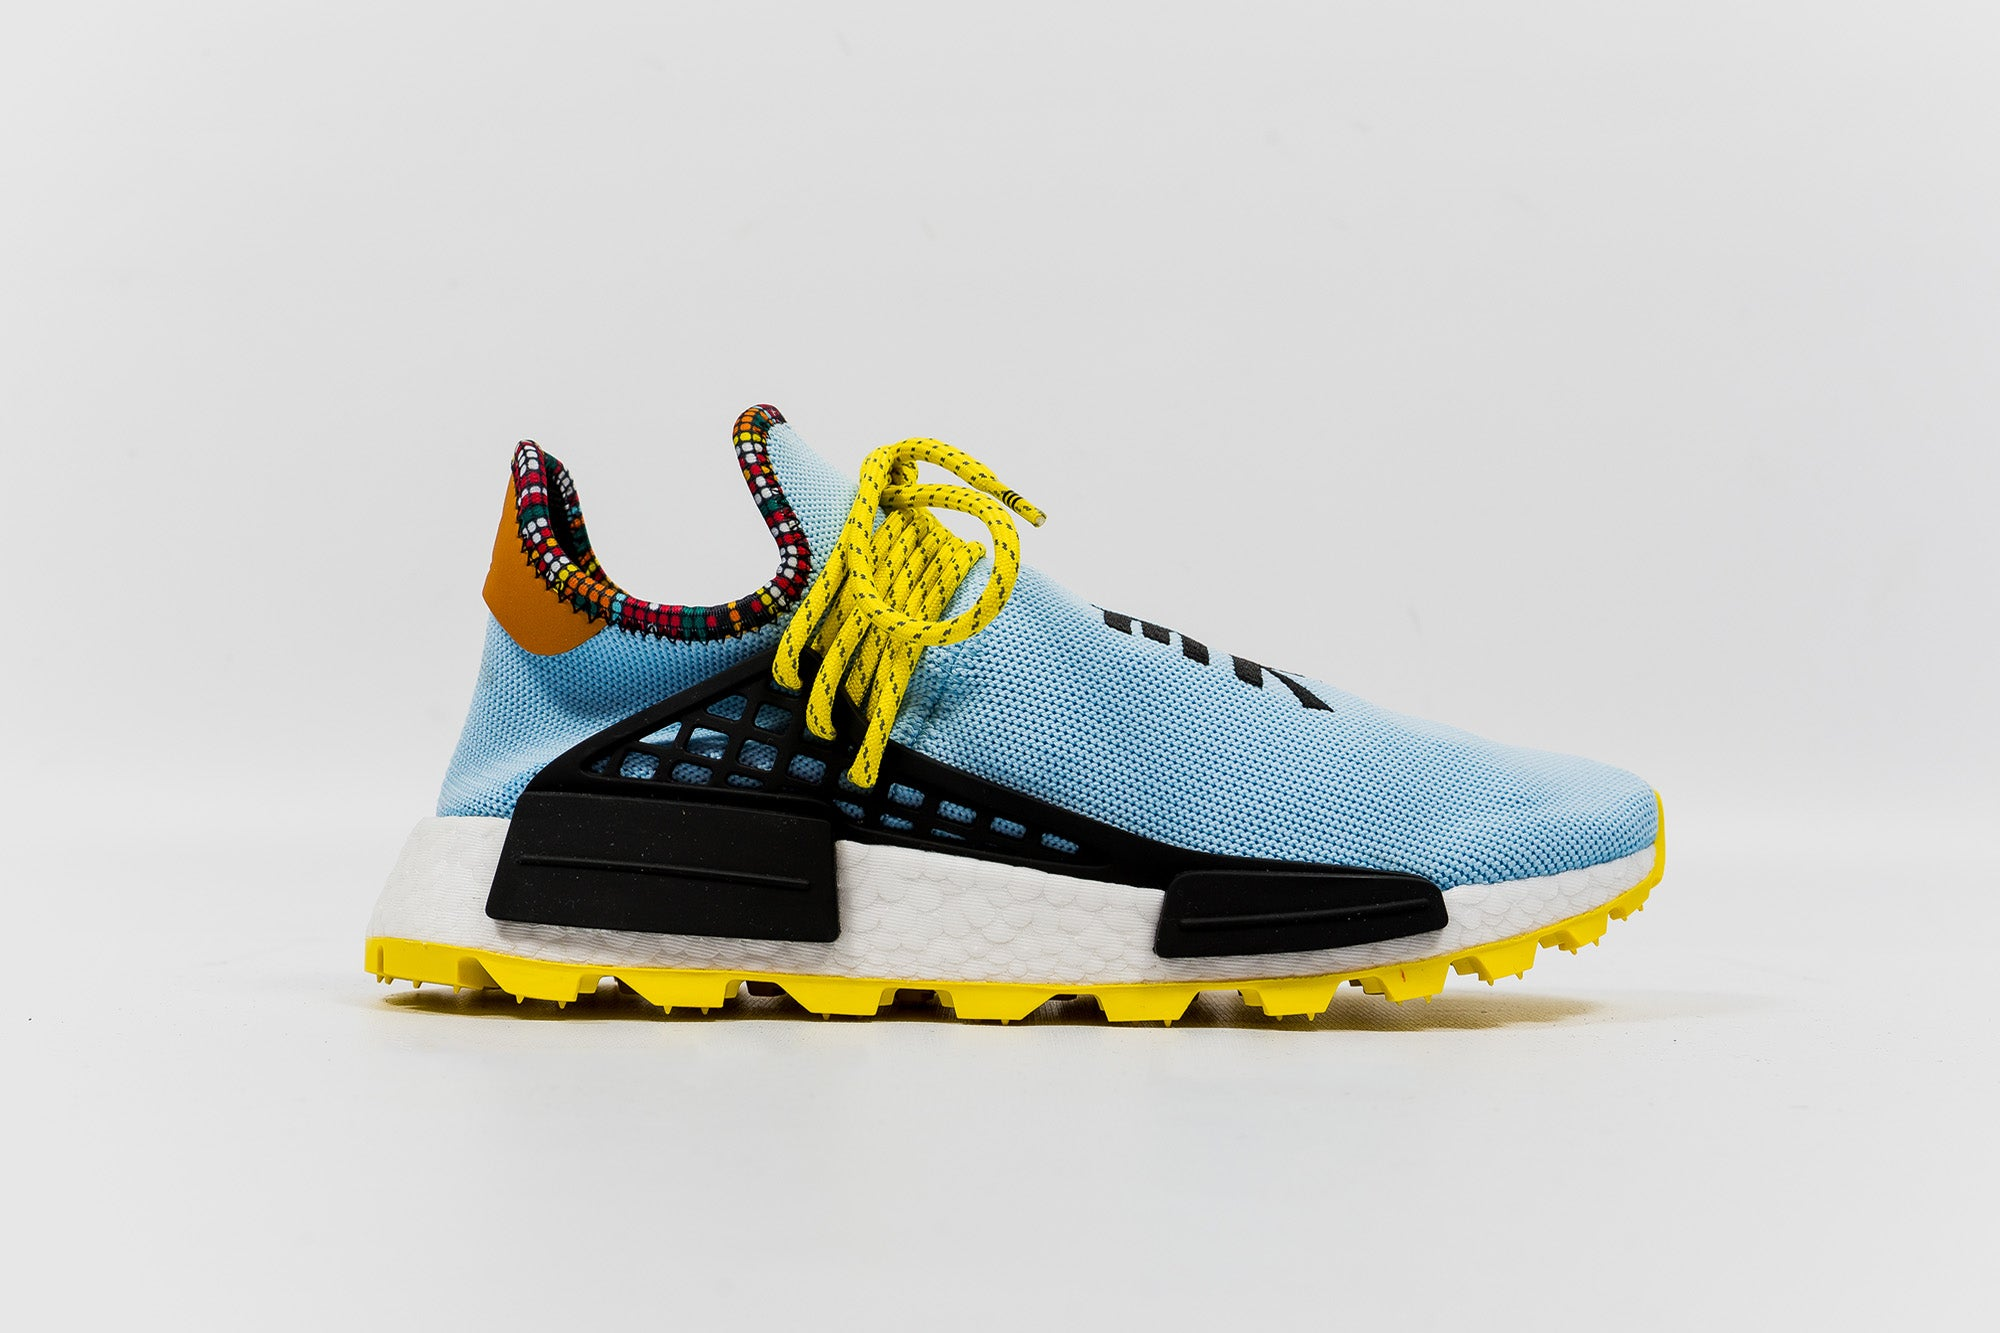 2bce3179ec23f ADIDAS ORIGINALS X PHARRELL WILLAMS SOLAR HU NMD